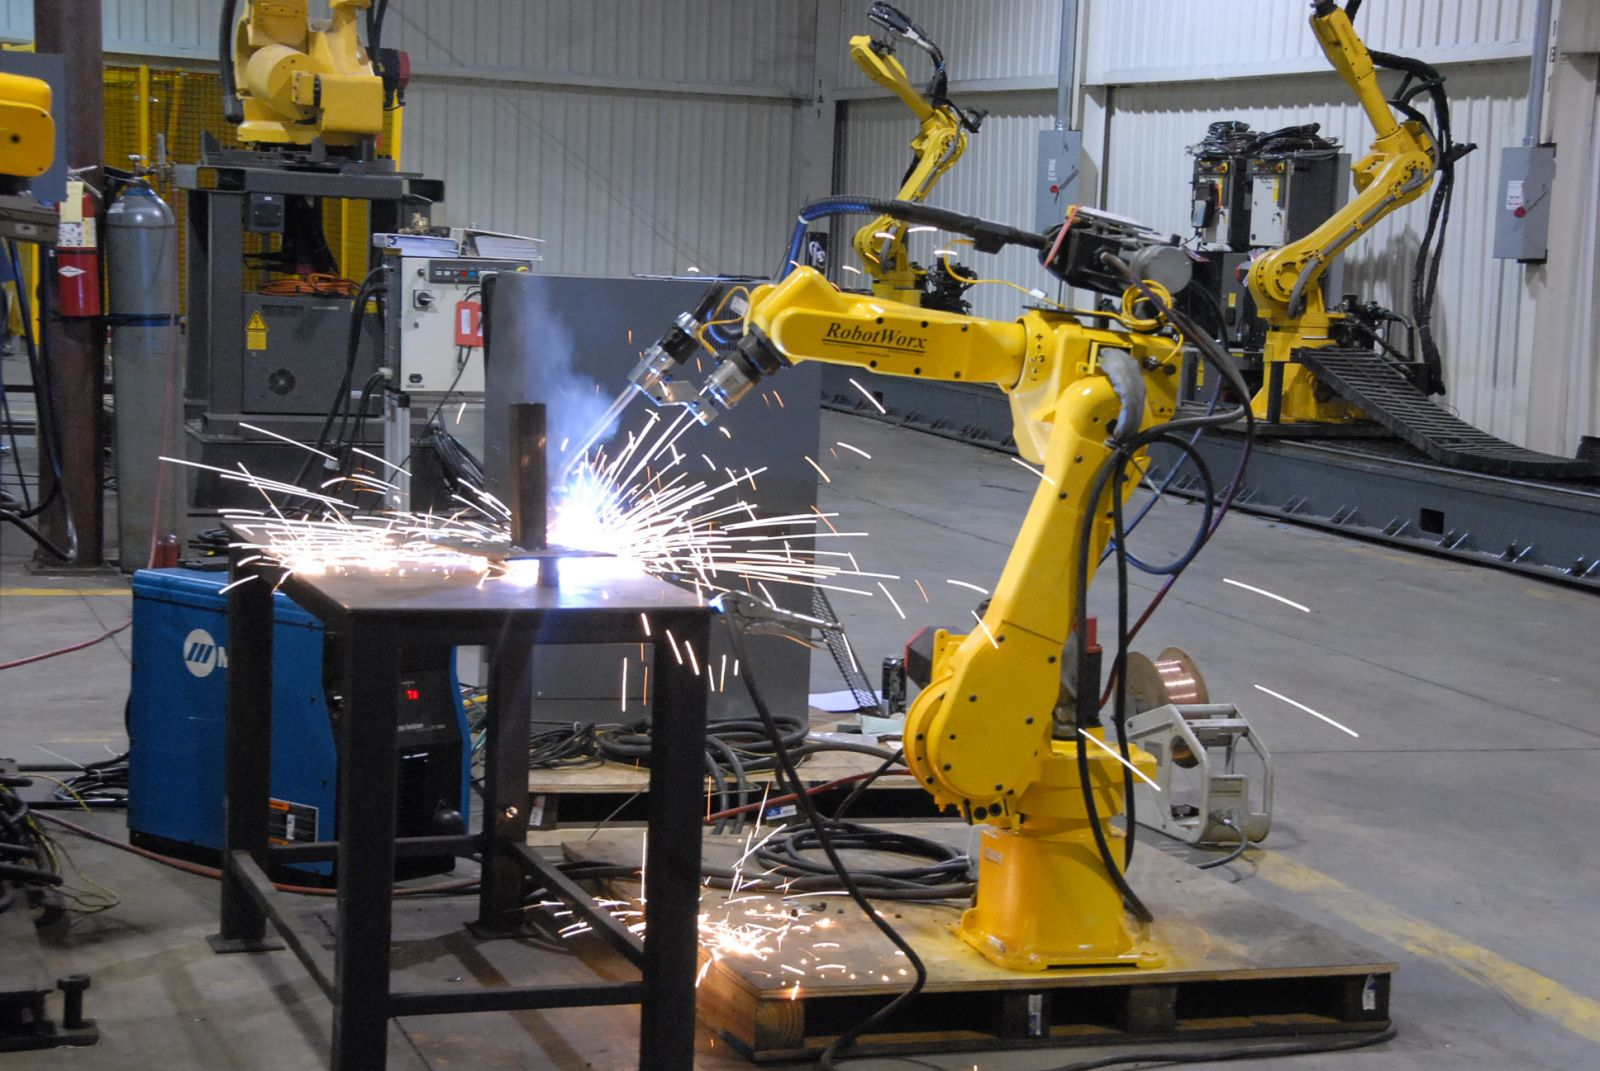 automation and robotics System engineering of space automation and robotics systems is the discipline of specifying, designing and ultimately validating space automation and robotic systems that fulfill utilisation needs under defined environmental and operational constraints.